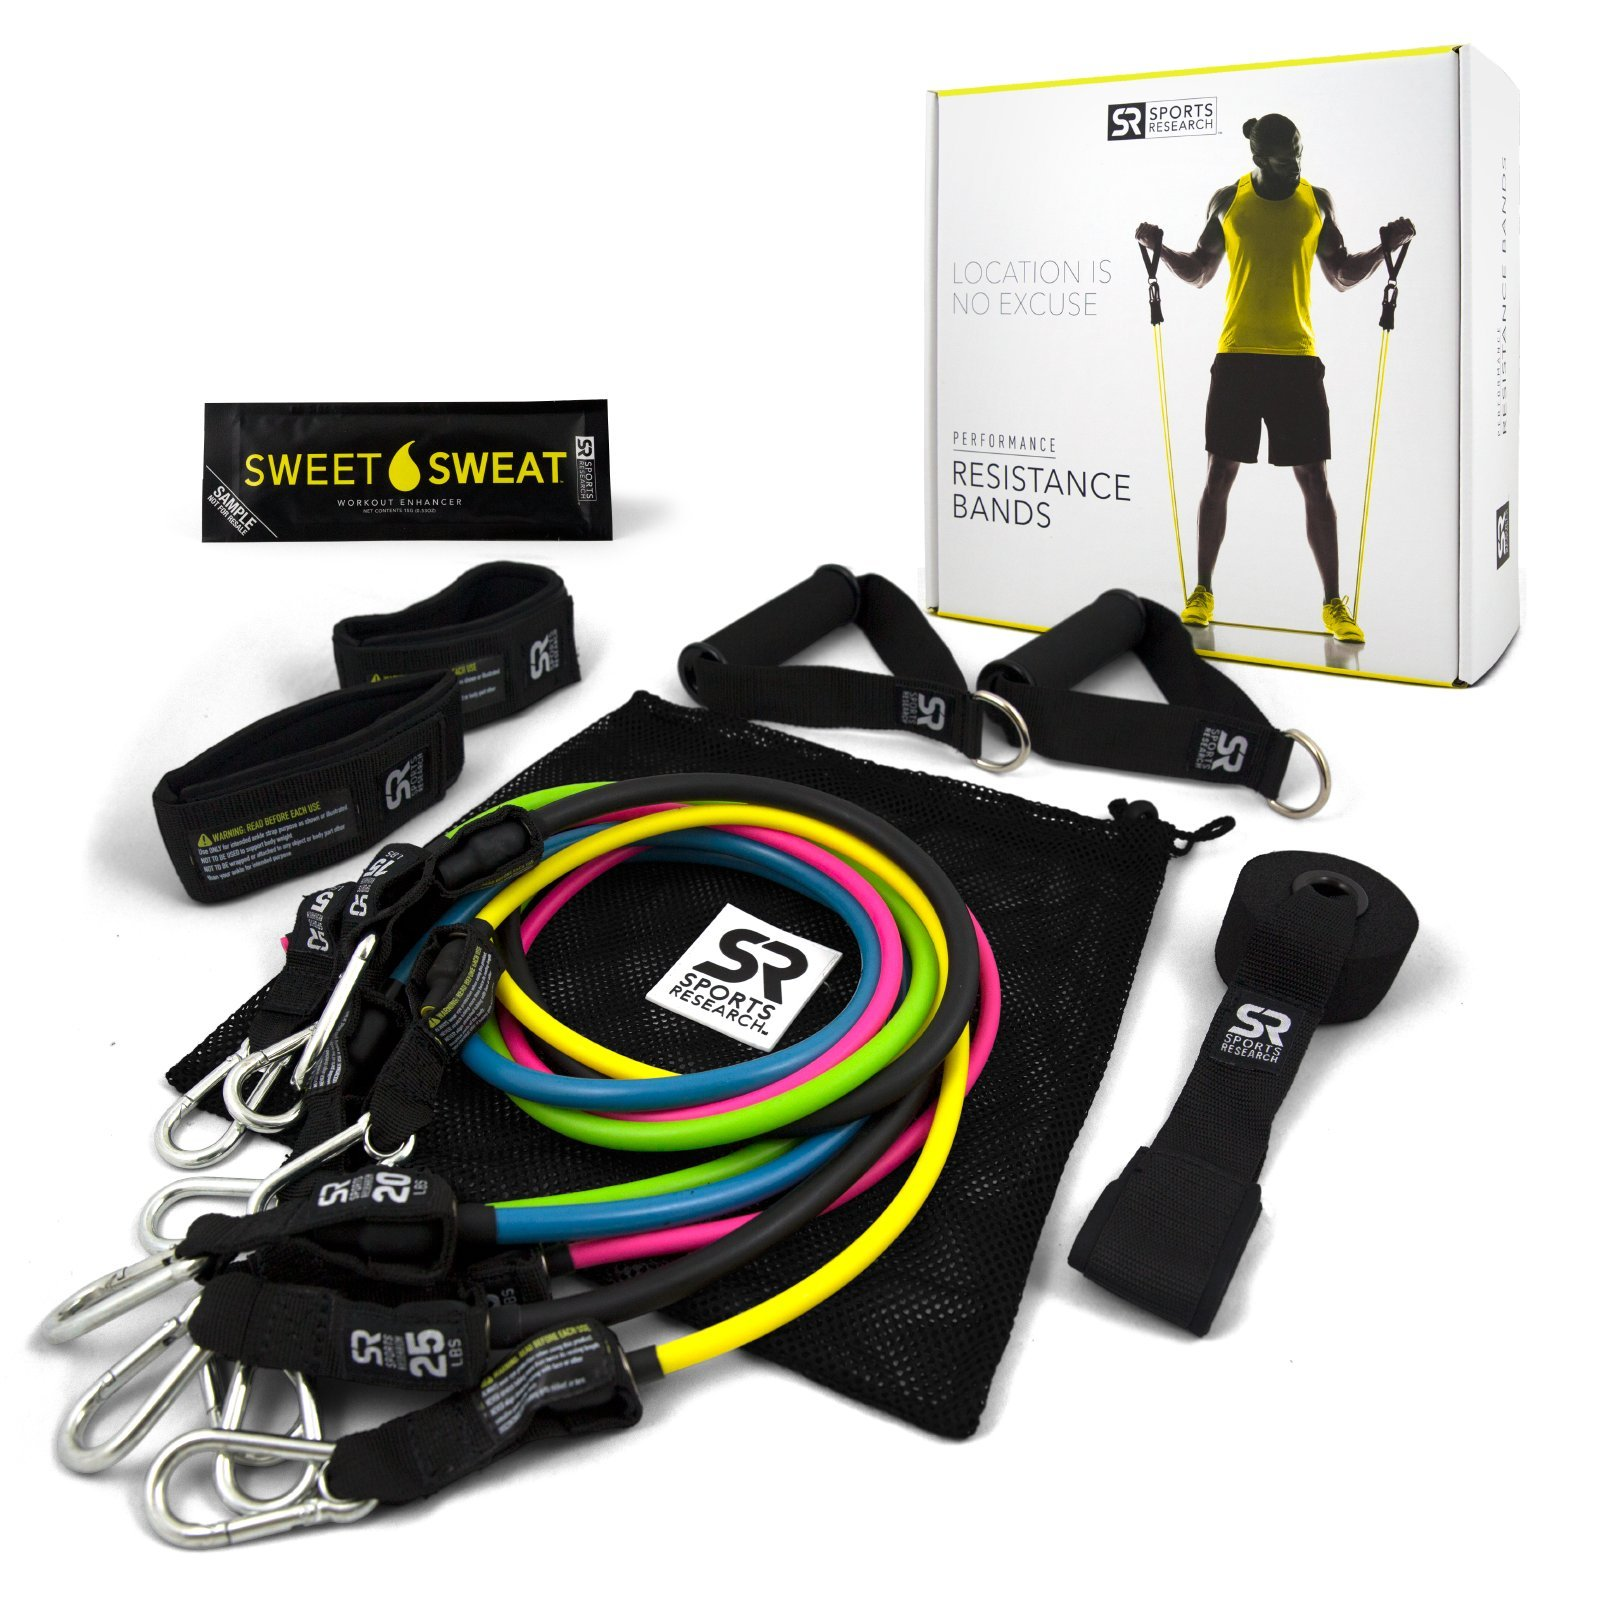 05fb794d88 Get Quotations · Sweet Sweat Premium Resistance Bands Set - Includes  Carrying bag